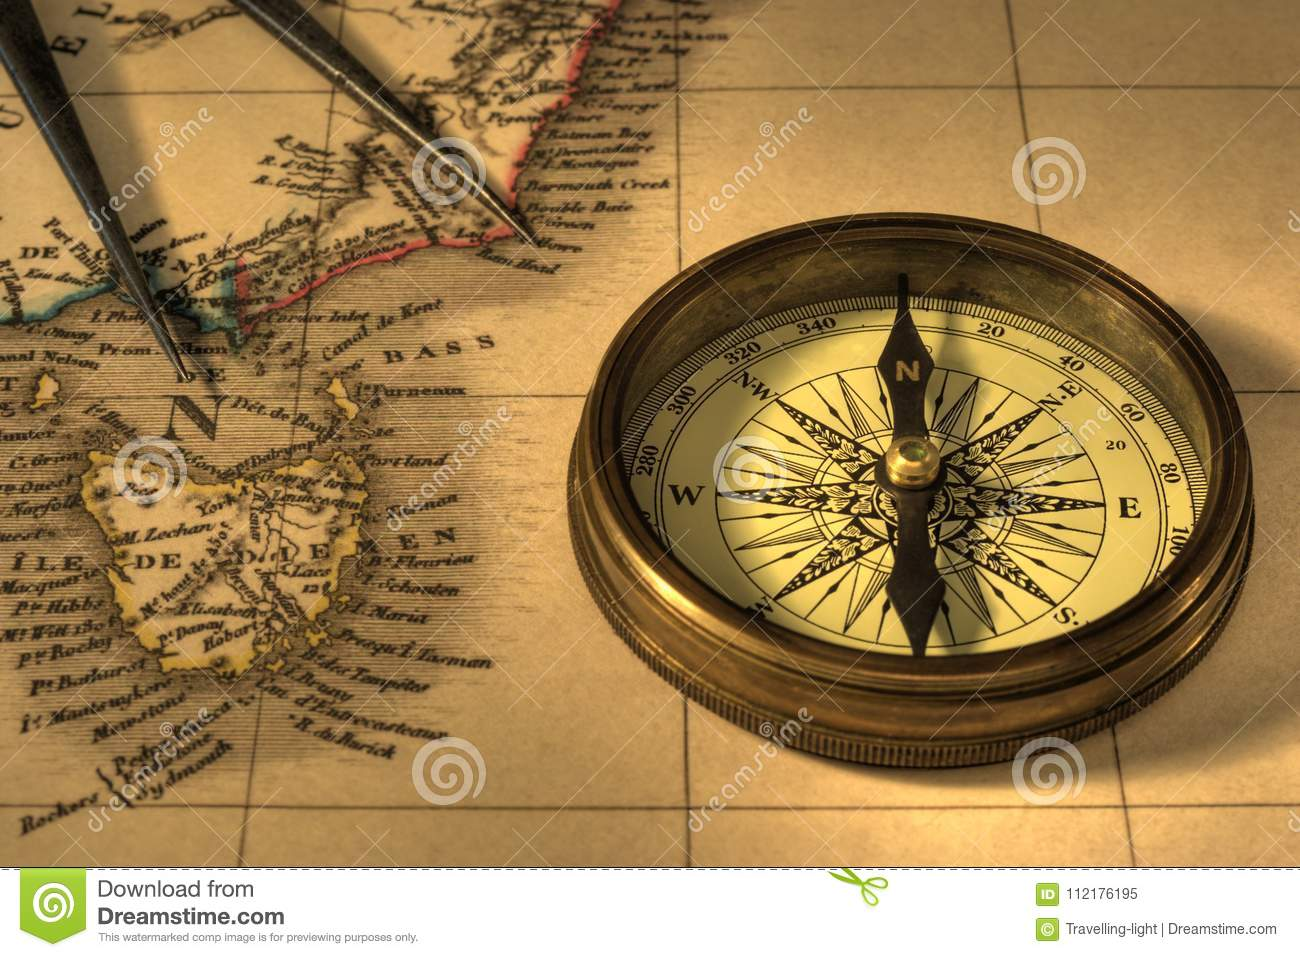 Old Map Of Australia With Compass Stock Image - Image of dividers ...